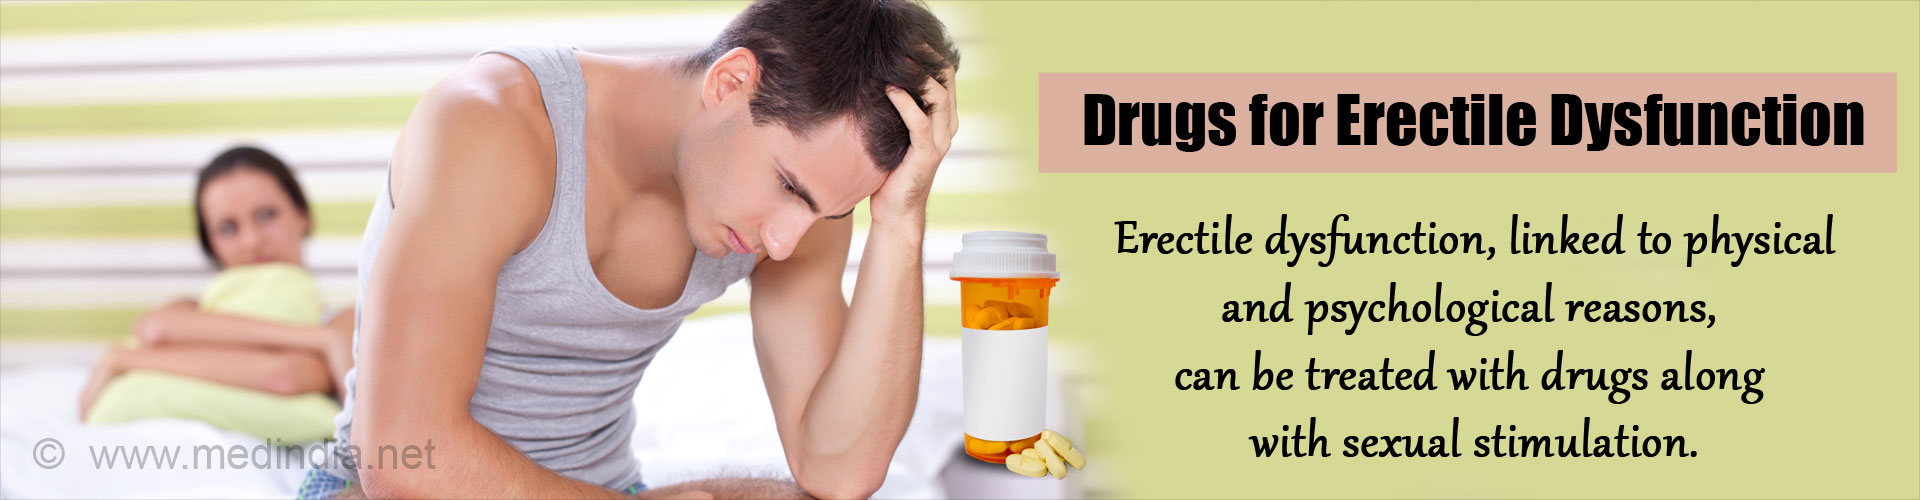 Drugs for Erectile Dysfunction